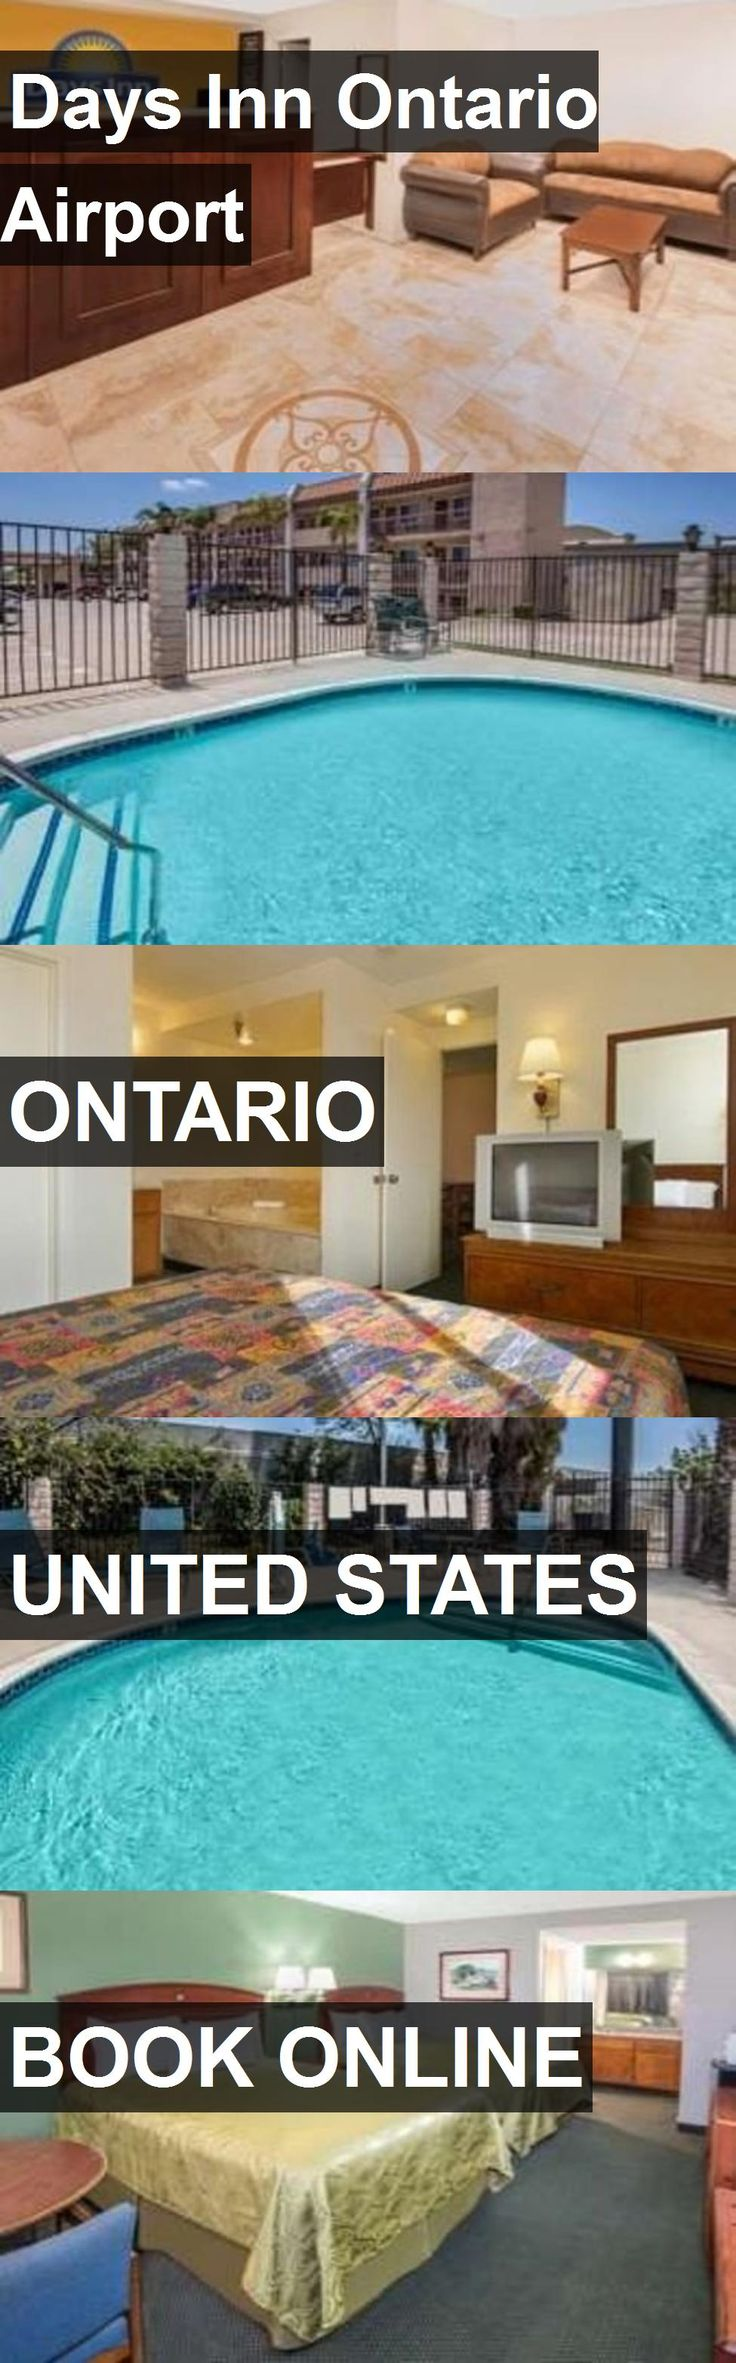 Hotel Days Inn Ontario Airport in Ontario, United States. For more information, photos, reviews and best prices please follow the link. #UnitedStates #Ontario #DaysInnOntarioAirport #hotel #travel #vacation